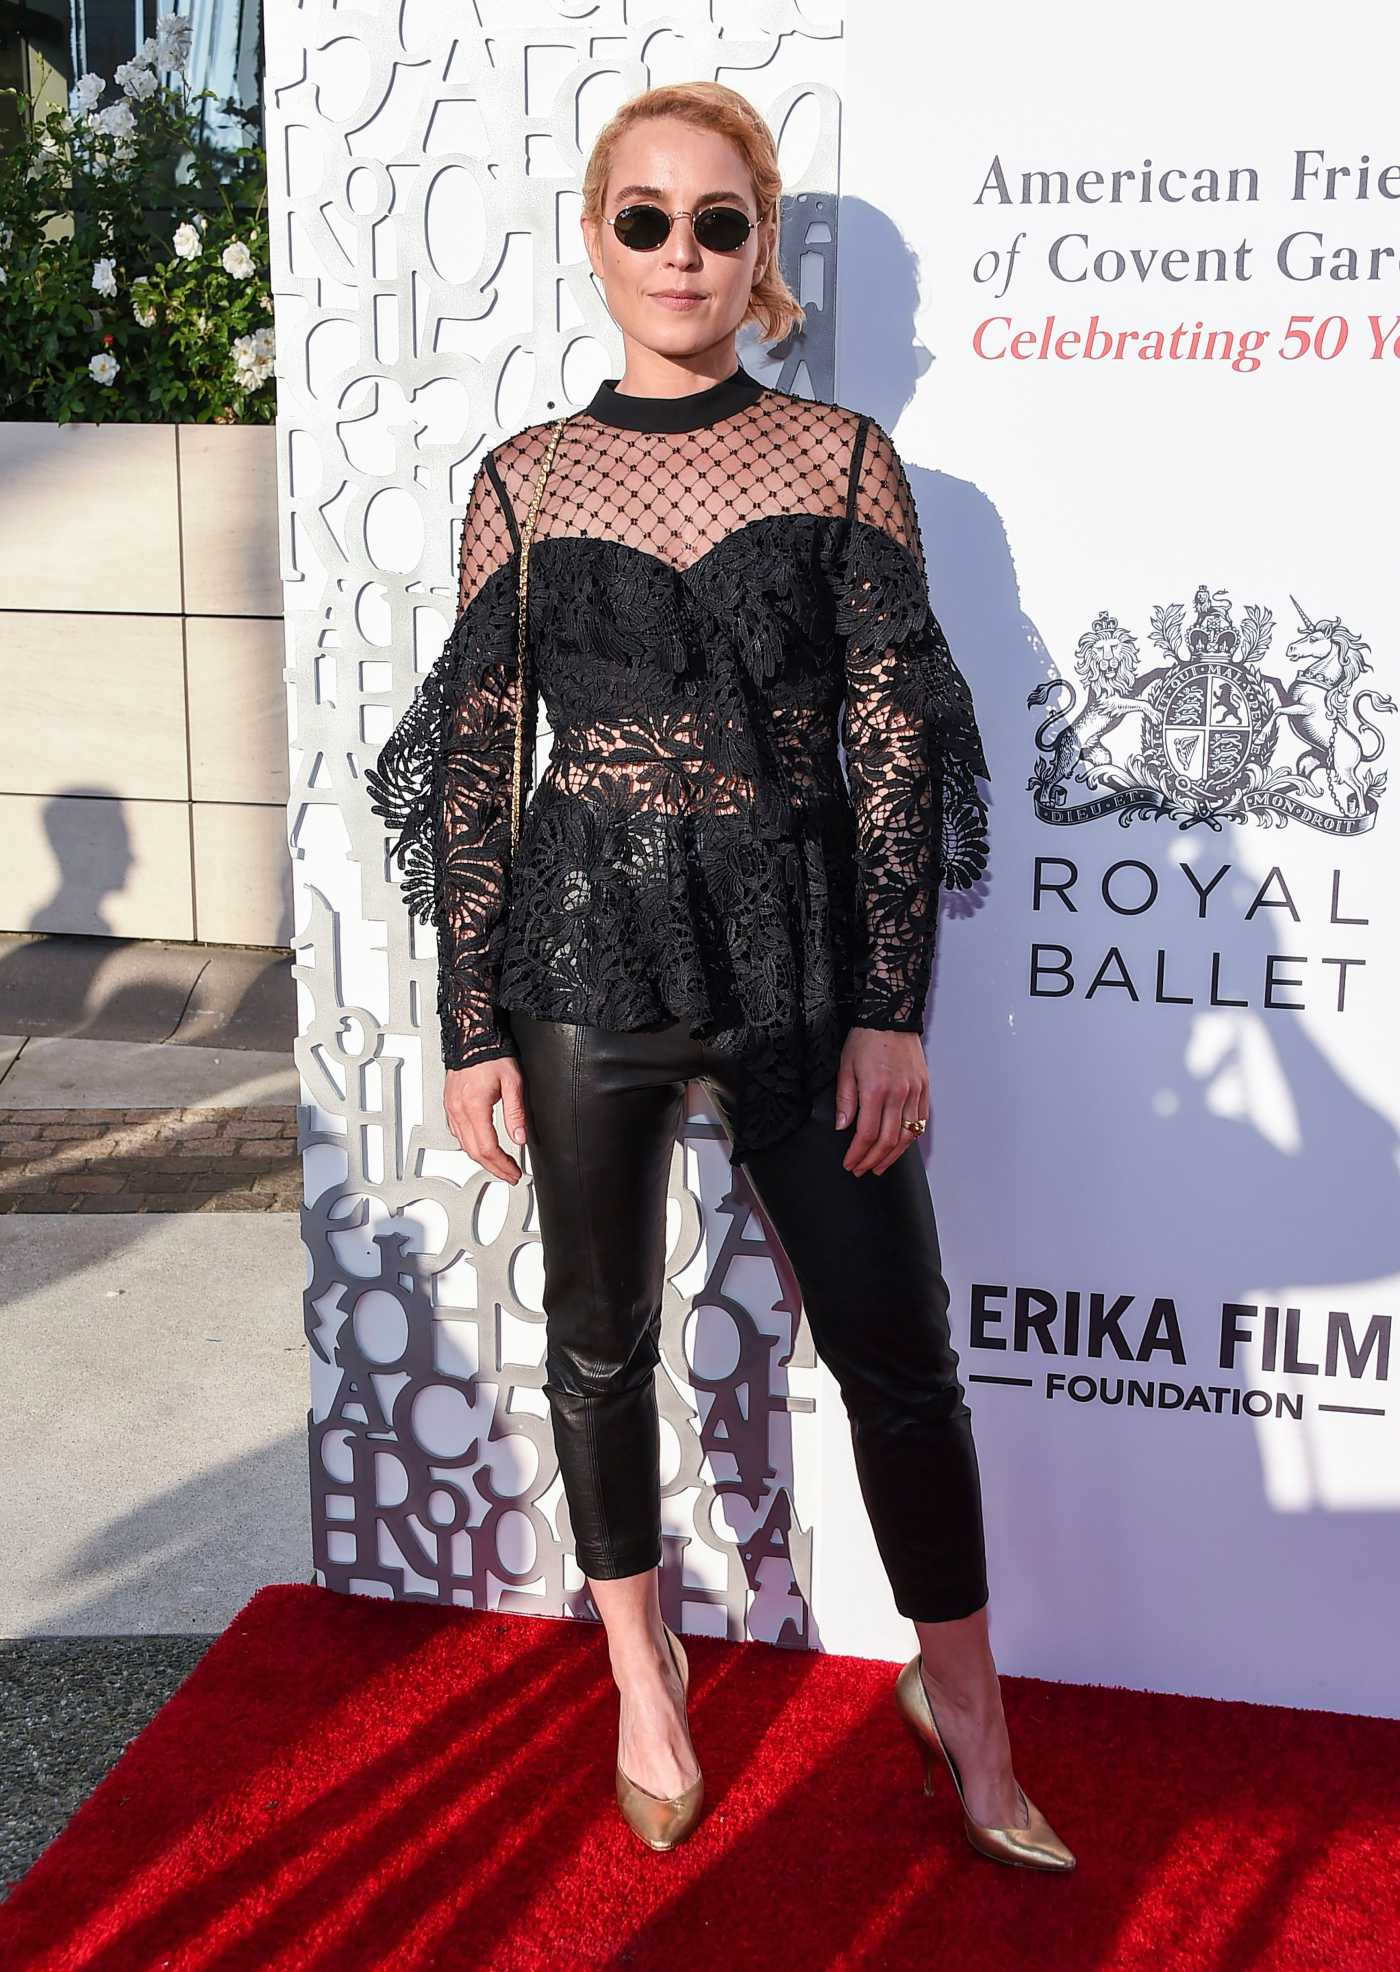 Noomi Rapace Attends American Friends of Covent Garden 50th Anniversary Celebration in Beverly Hills 07/10/2019